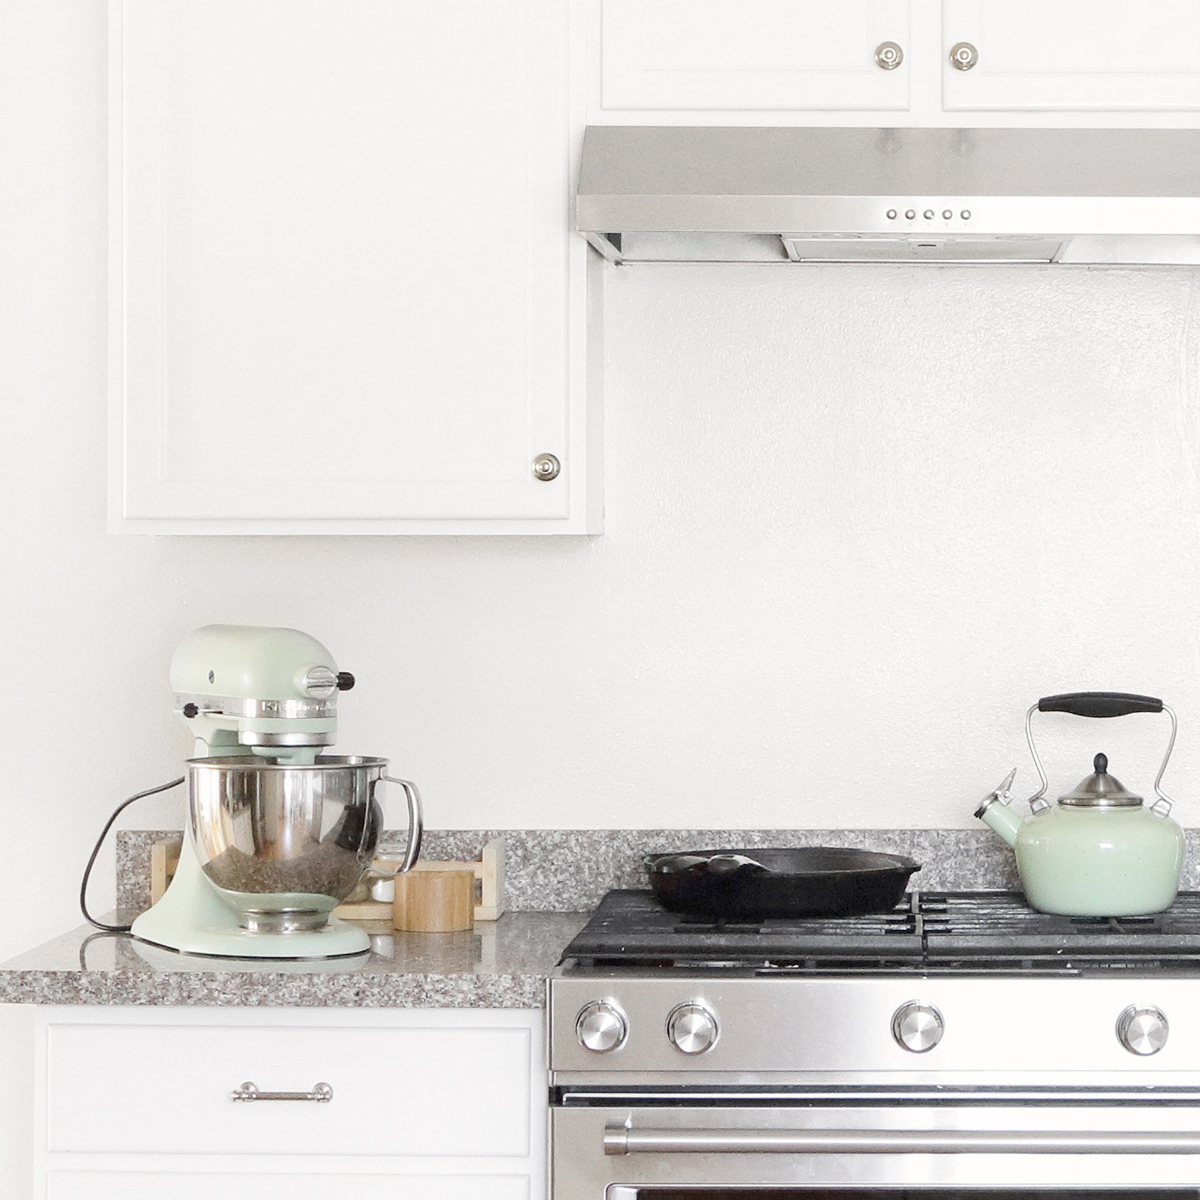 How To Paint Your Kitchen Cabinets: Abbreviated